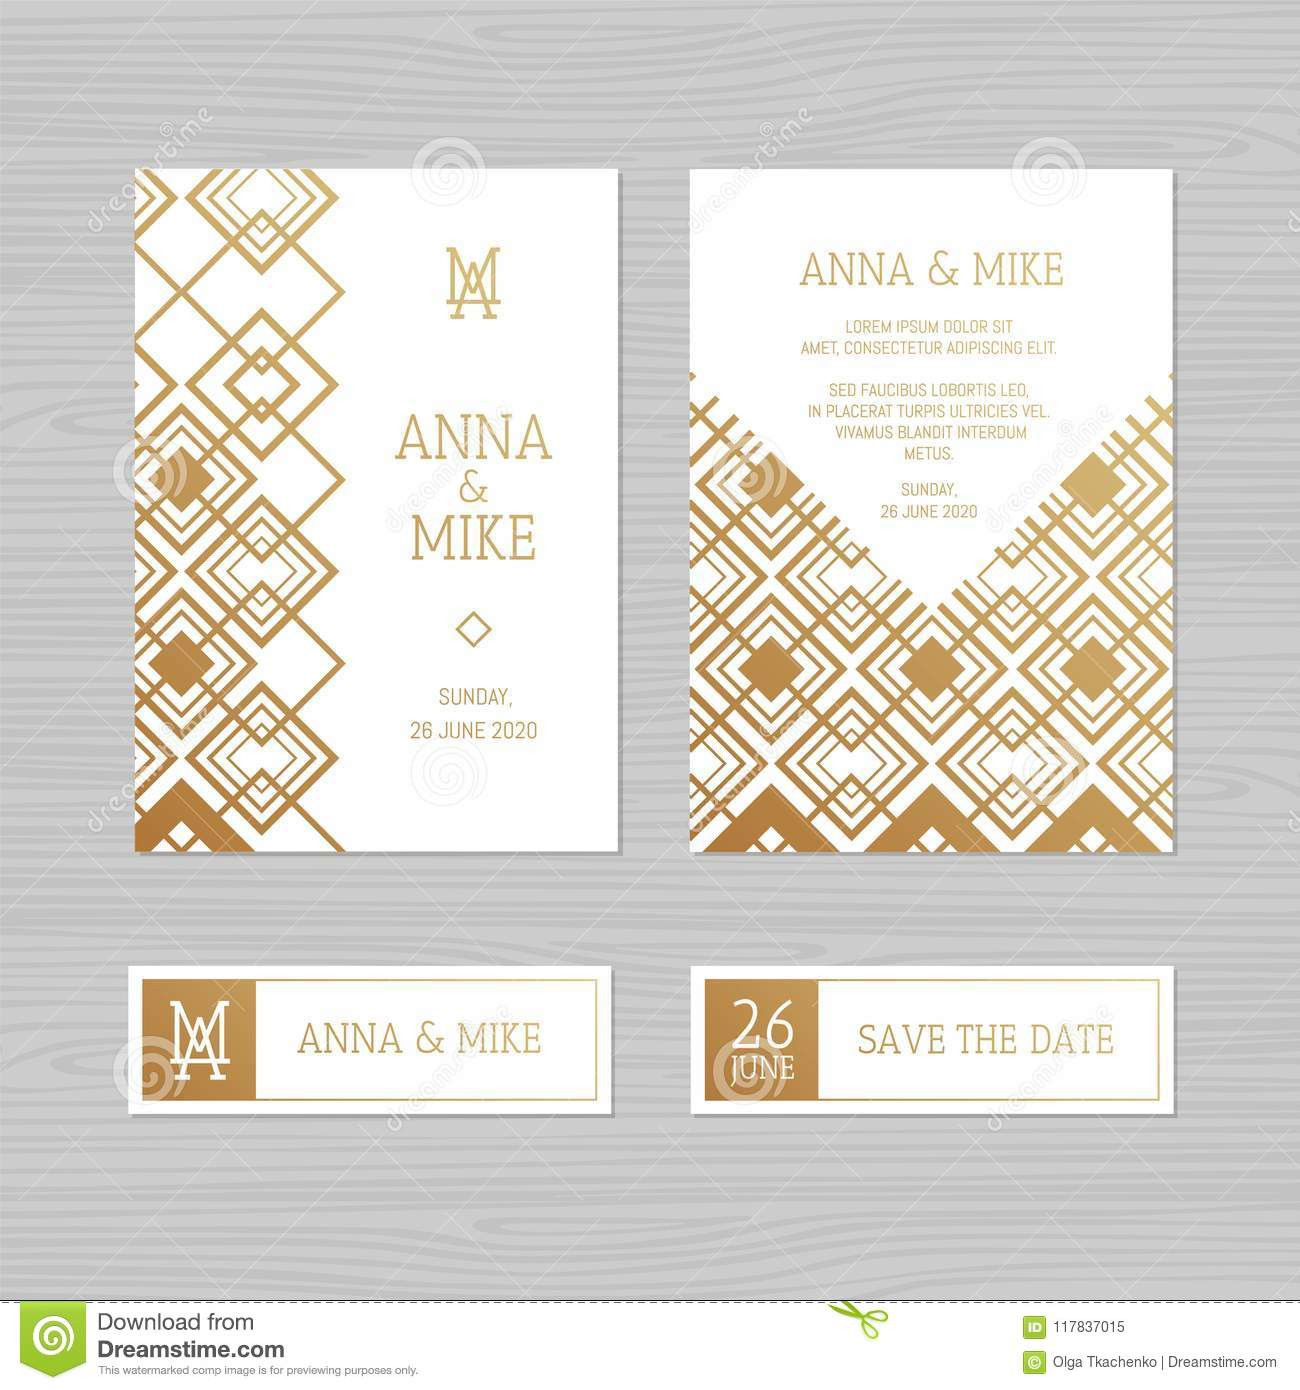 Luxury wedding invitation or greeting card with geometric ornament. Art Deco style. Vector illustration.